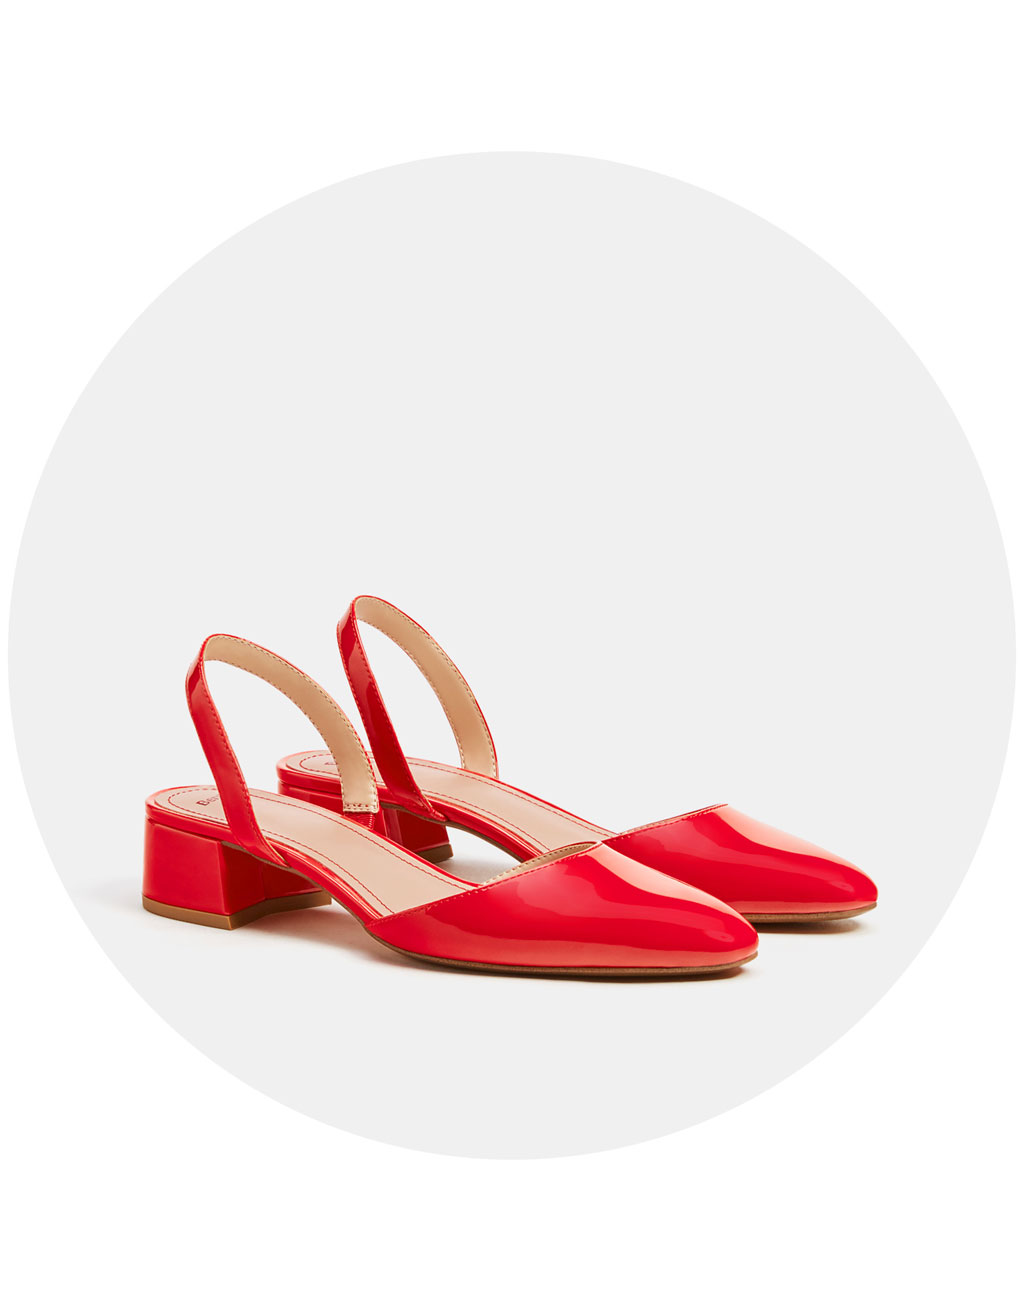 Slingback high-heeled shoes